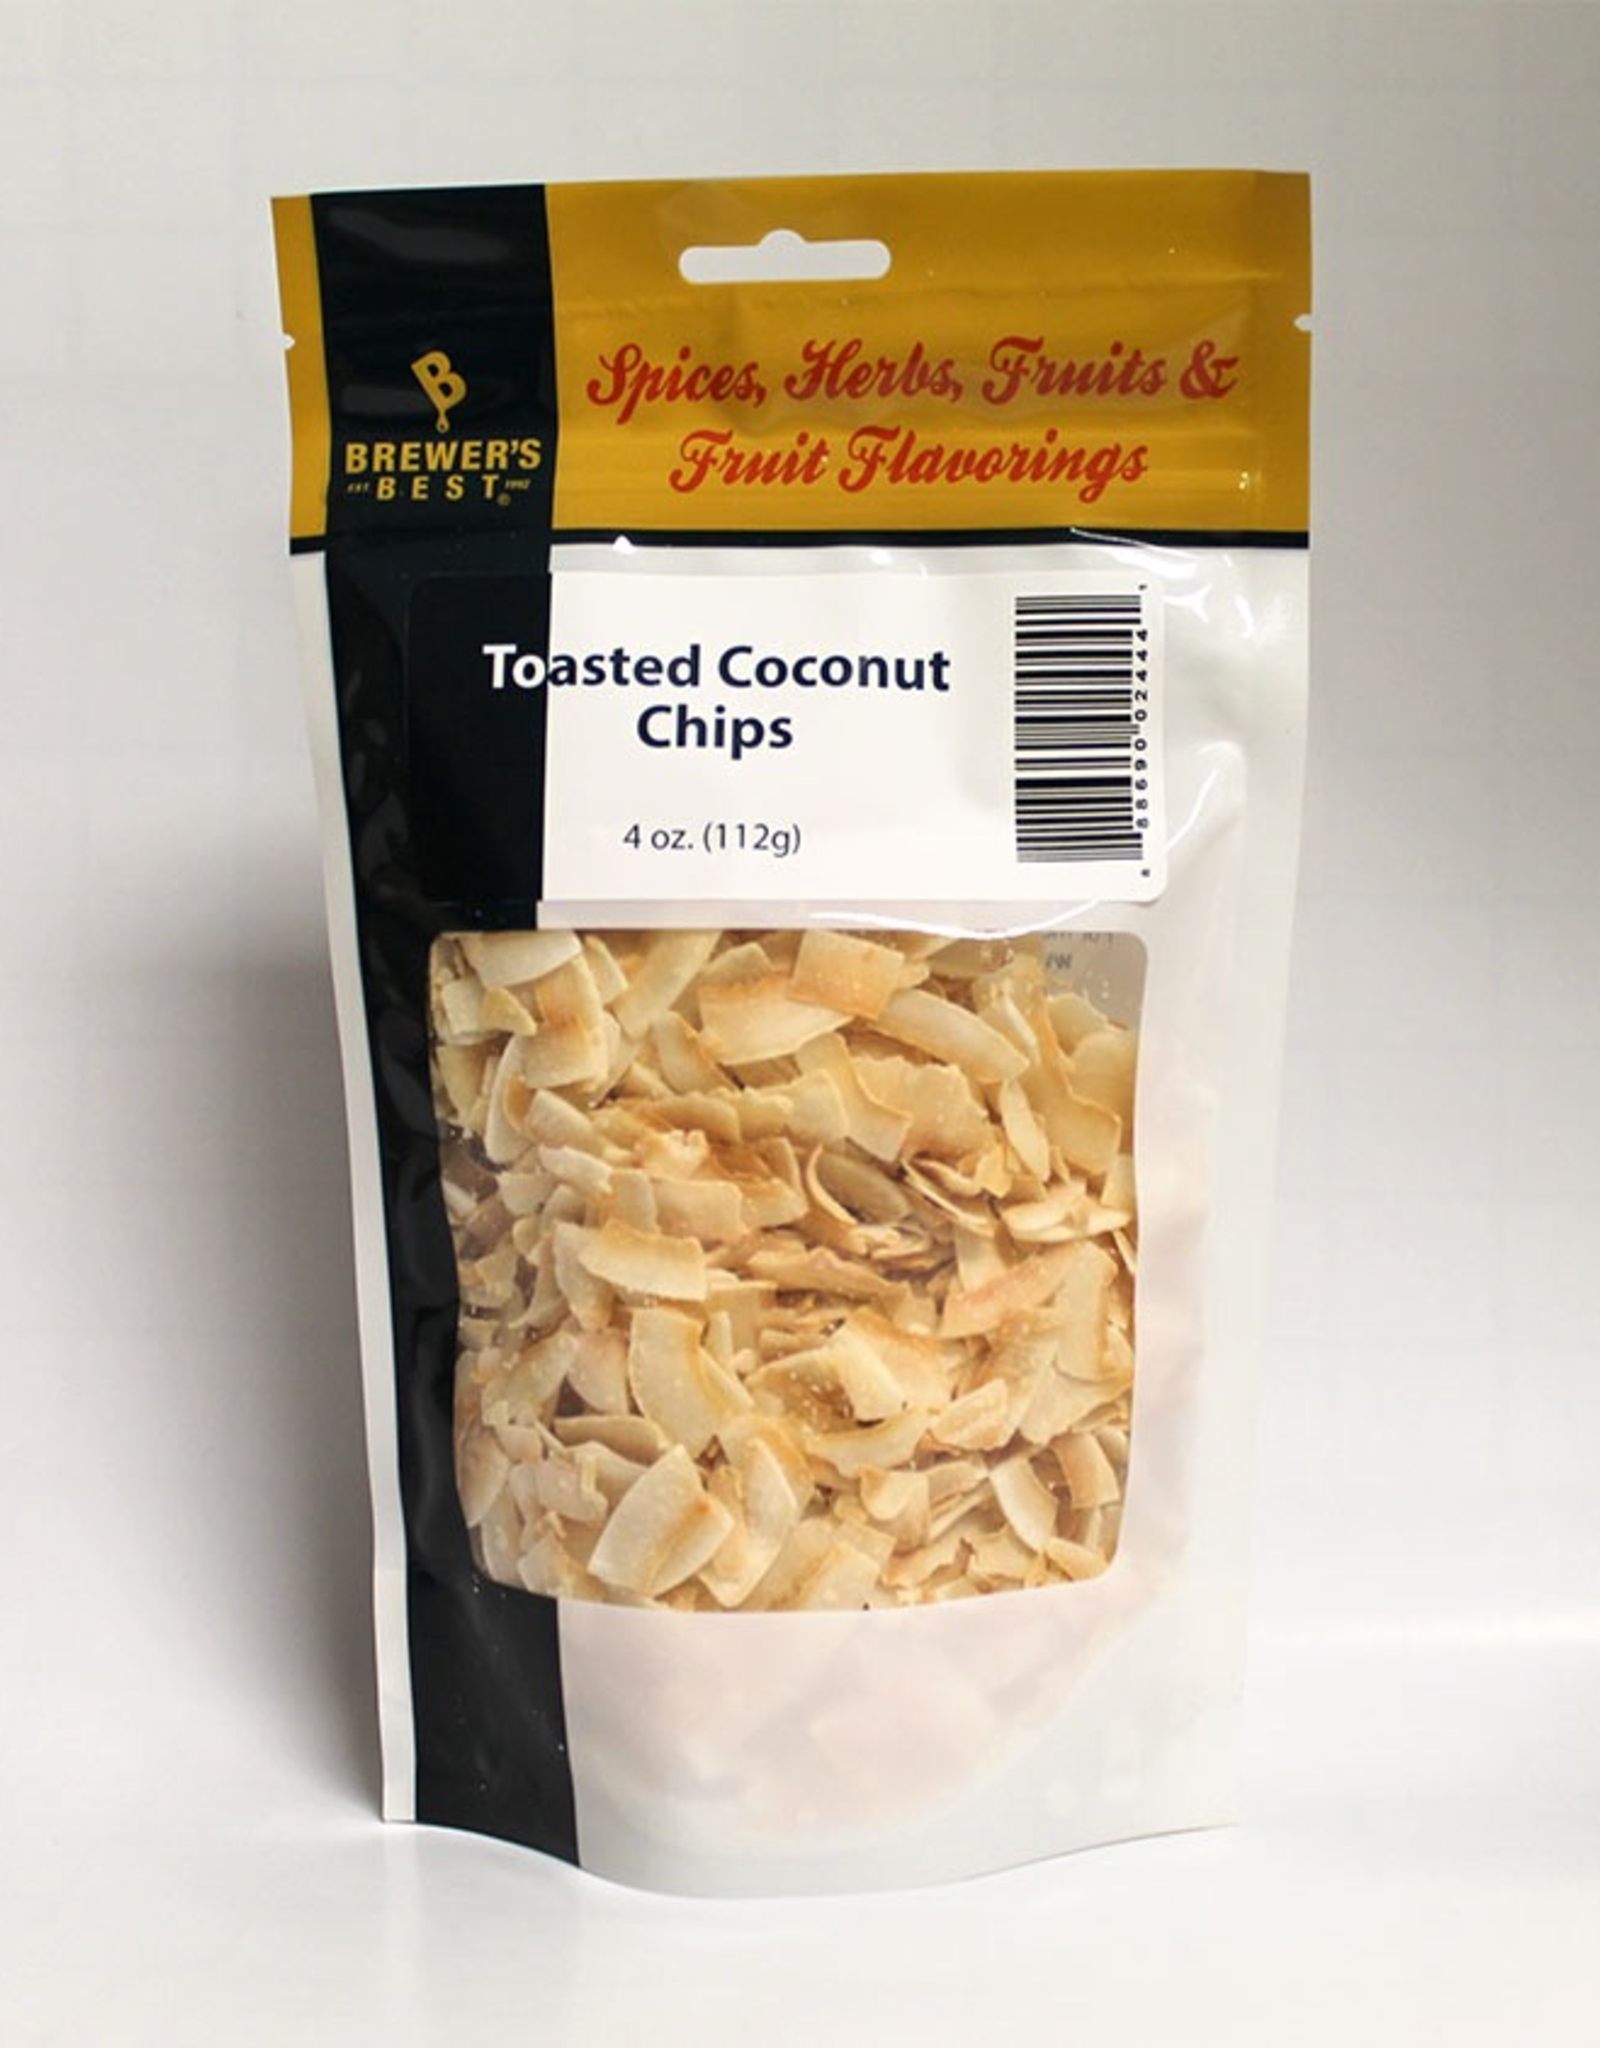 BREWERS BEST BREWER'S BEST  TOASTED COCONUT